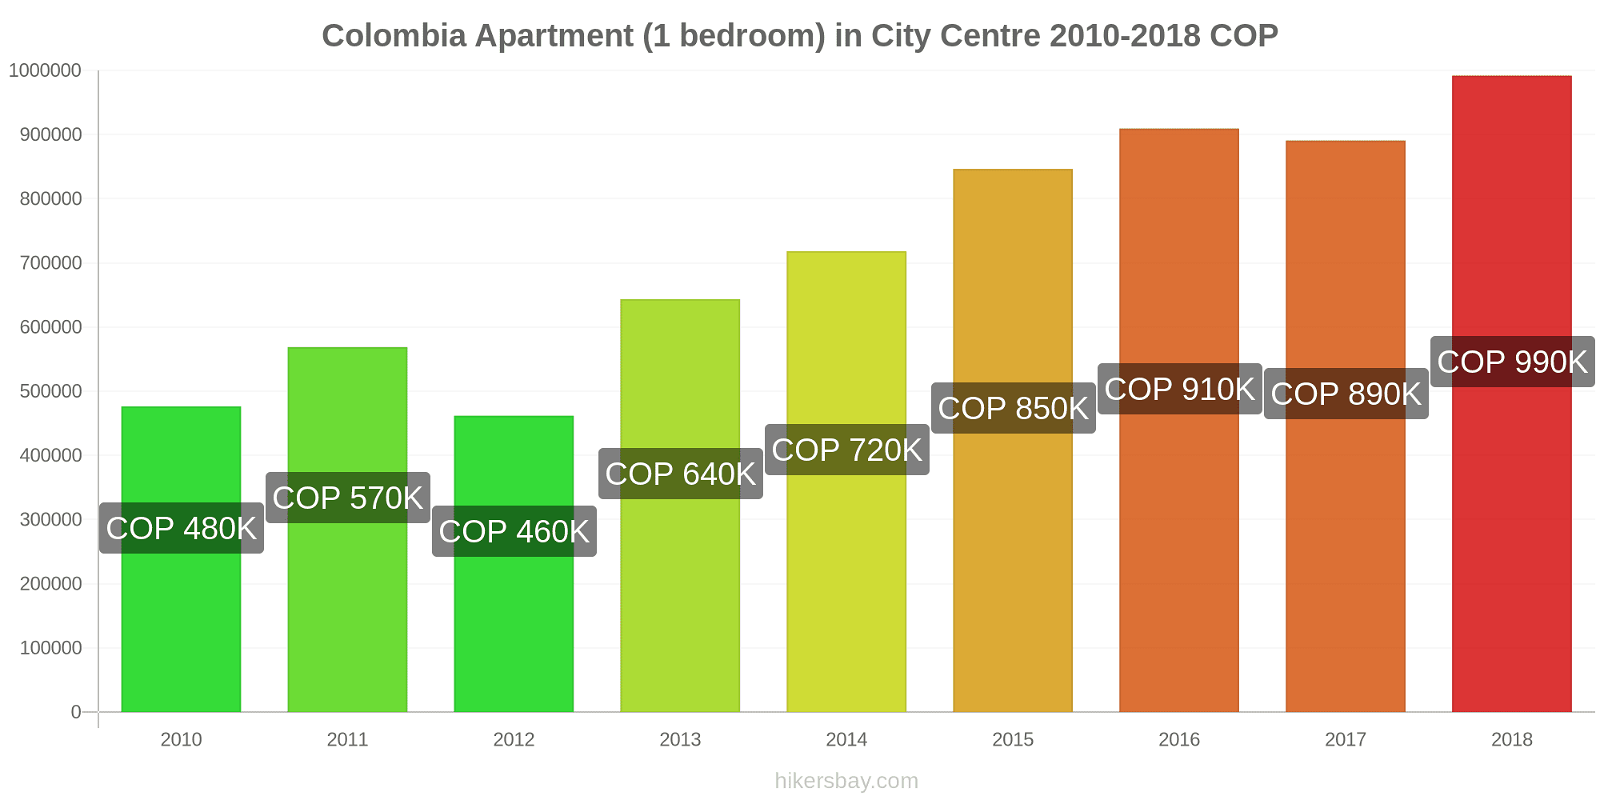 Colombia price changes Apartment (1 bedroom) in City Centre hikersbay.com